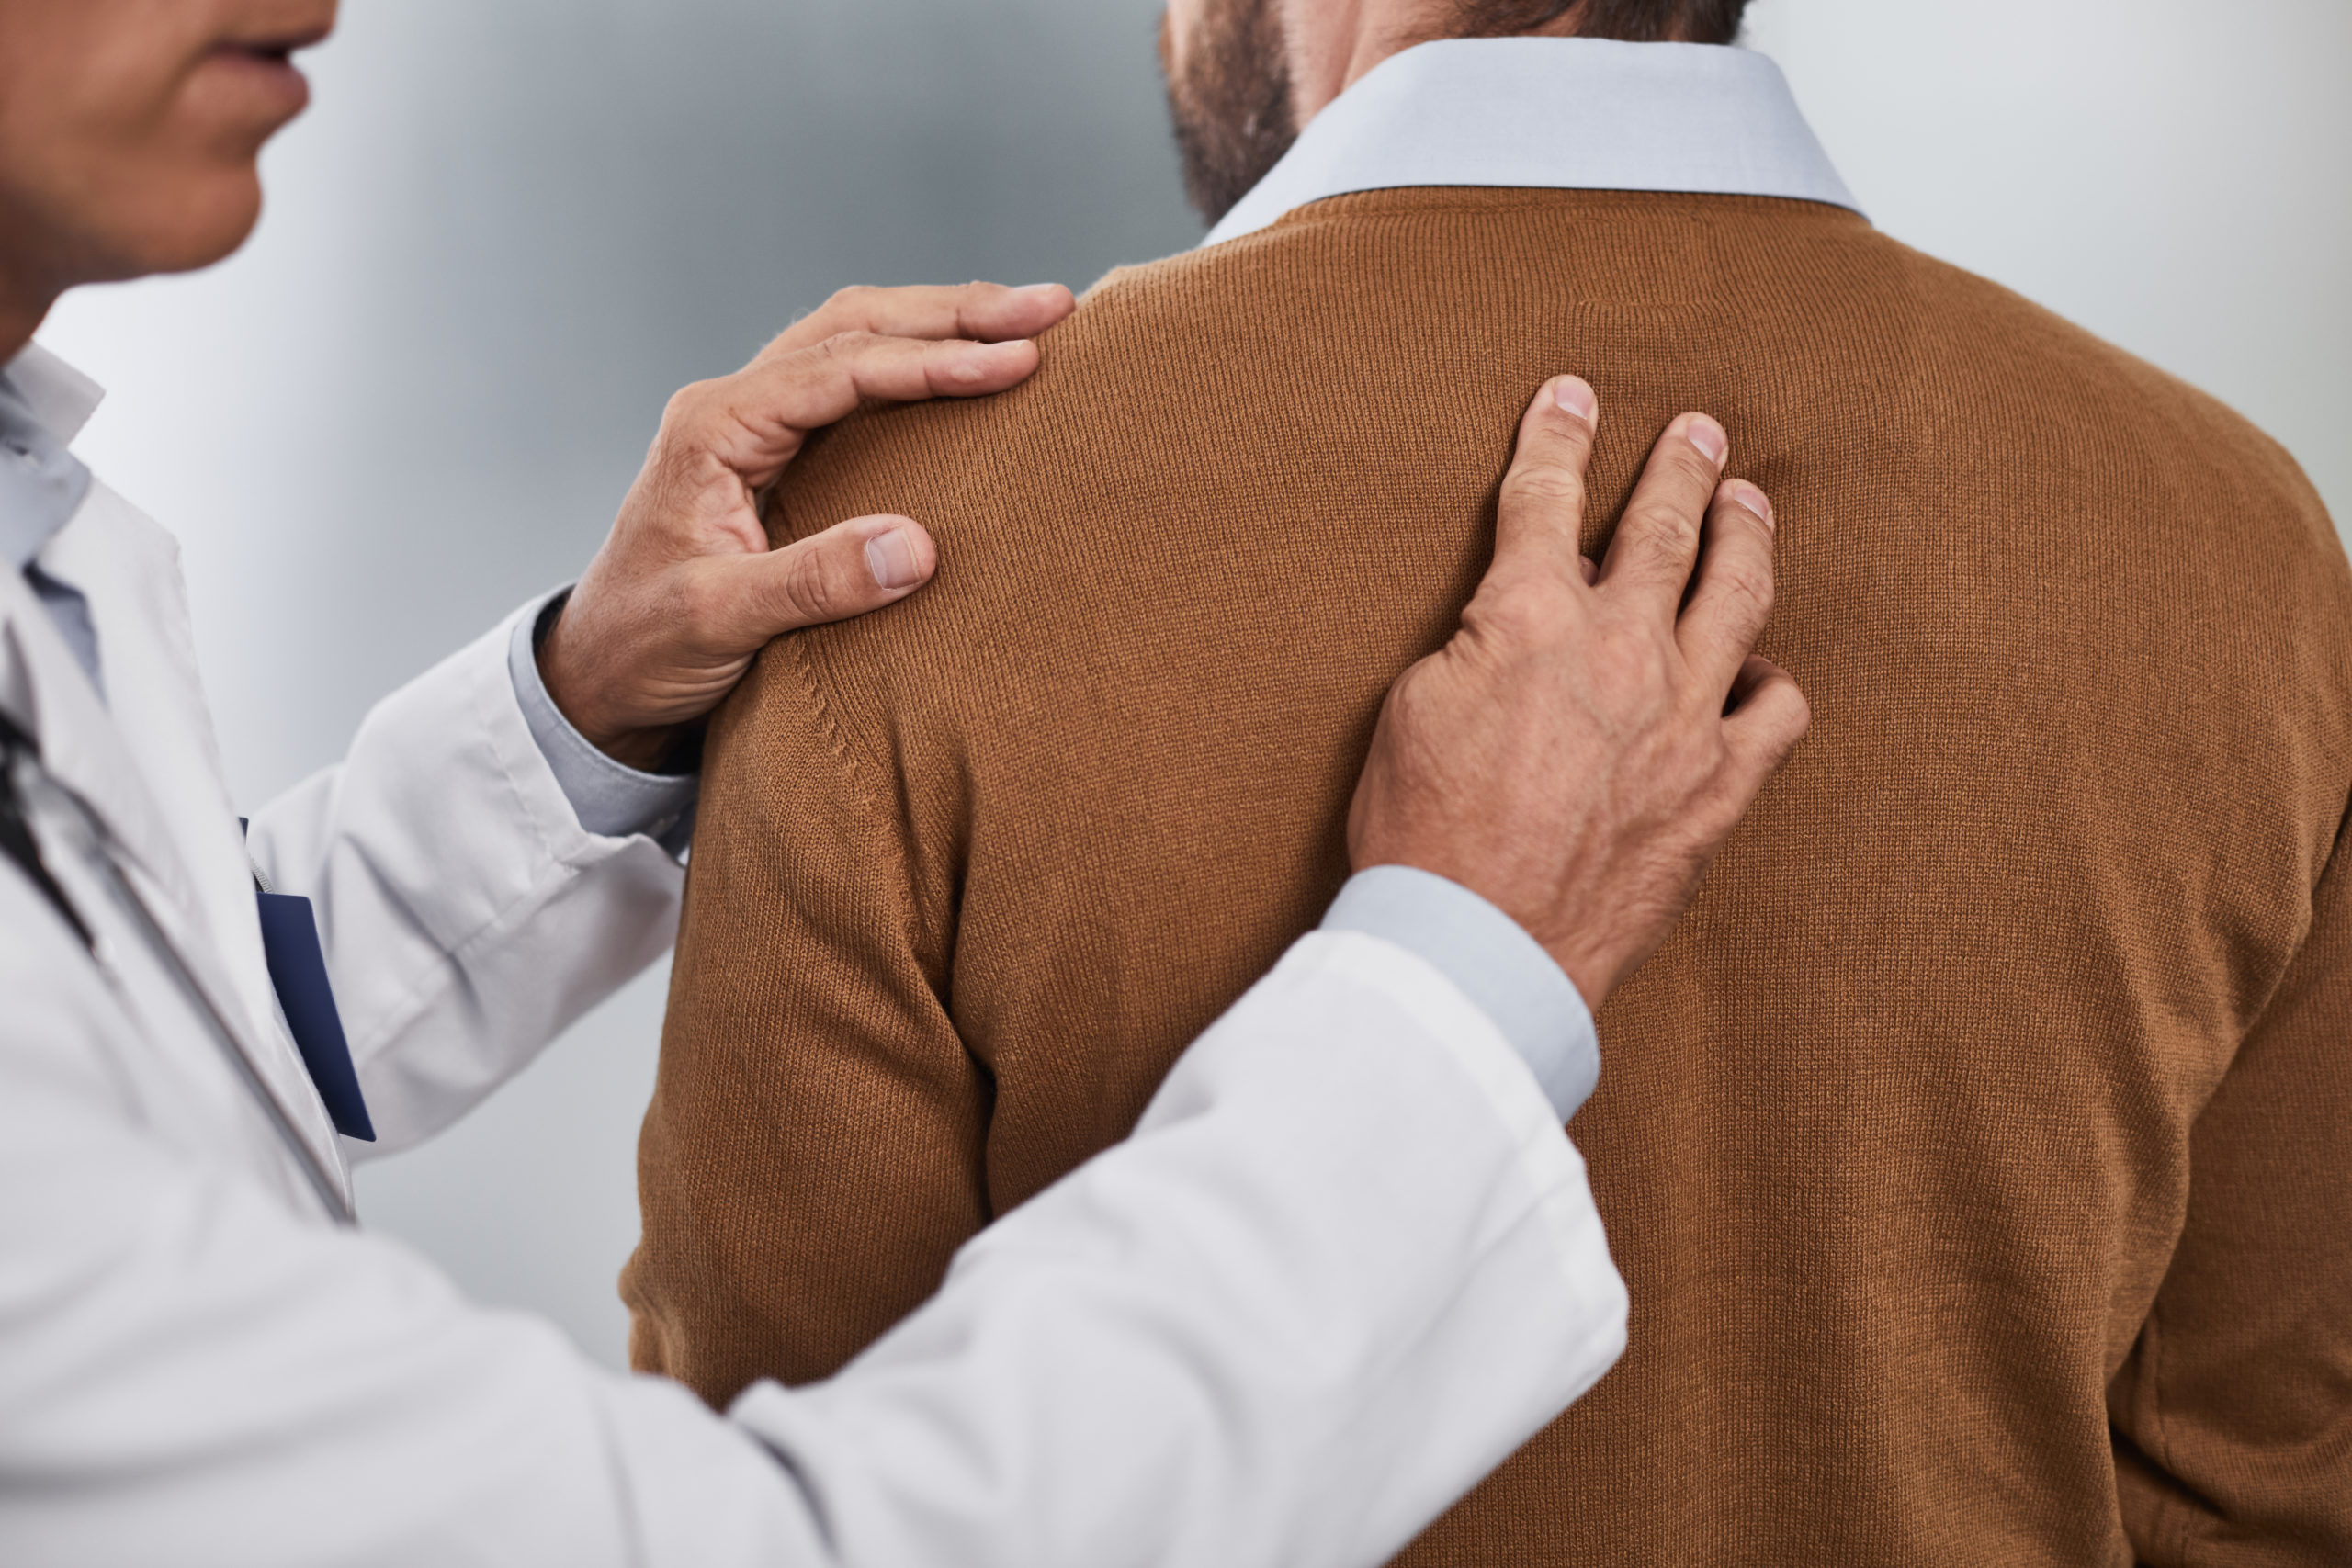 What Is the Thoracic Spine?